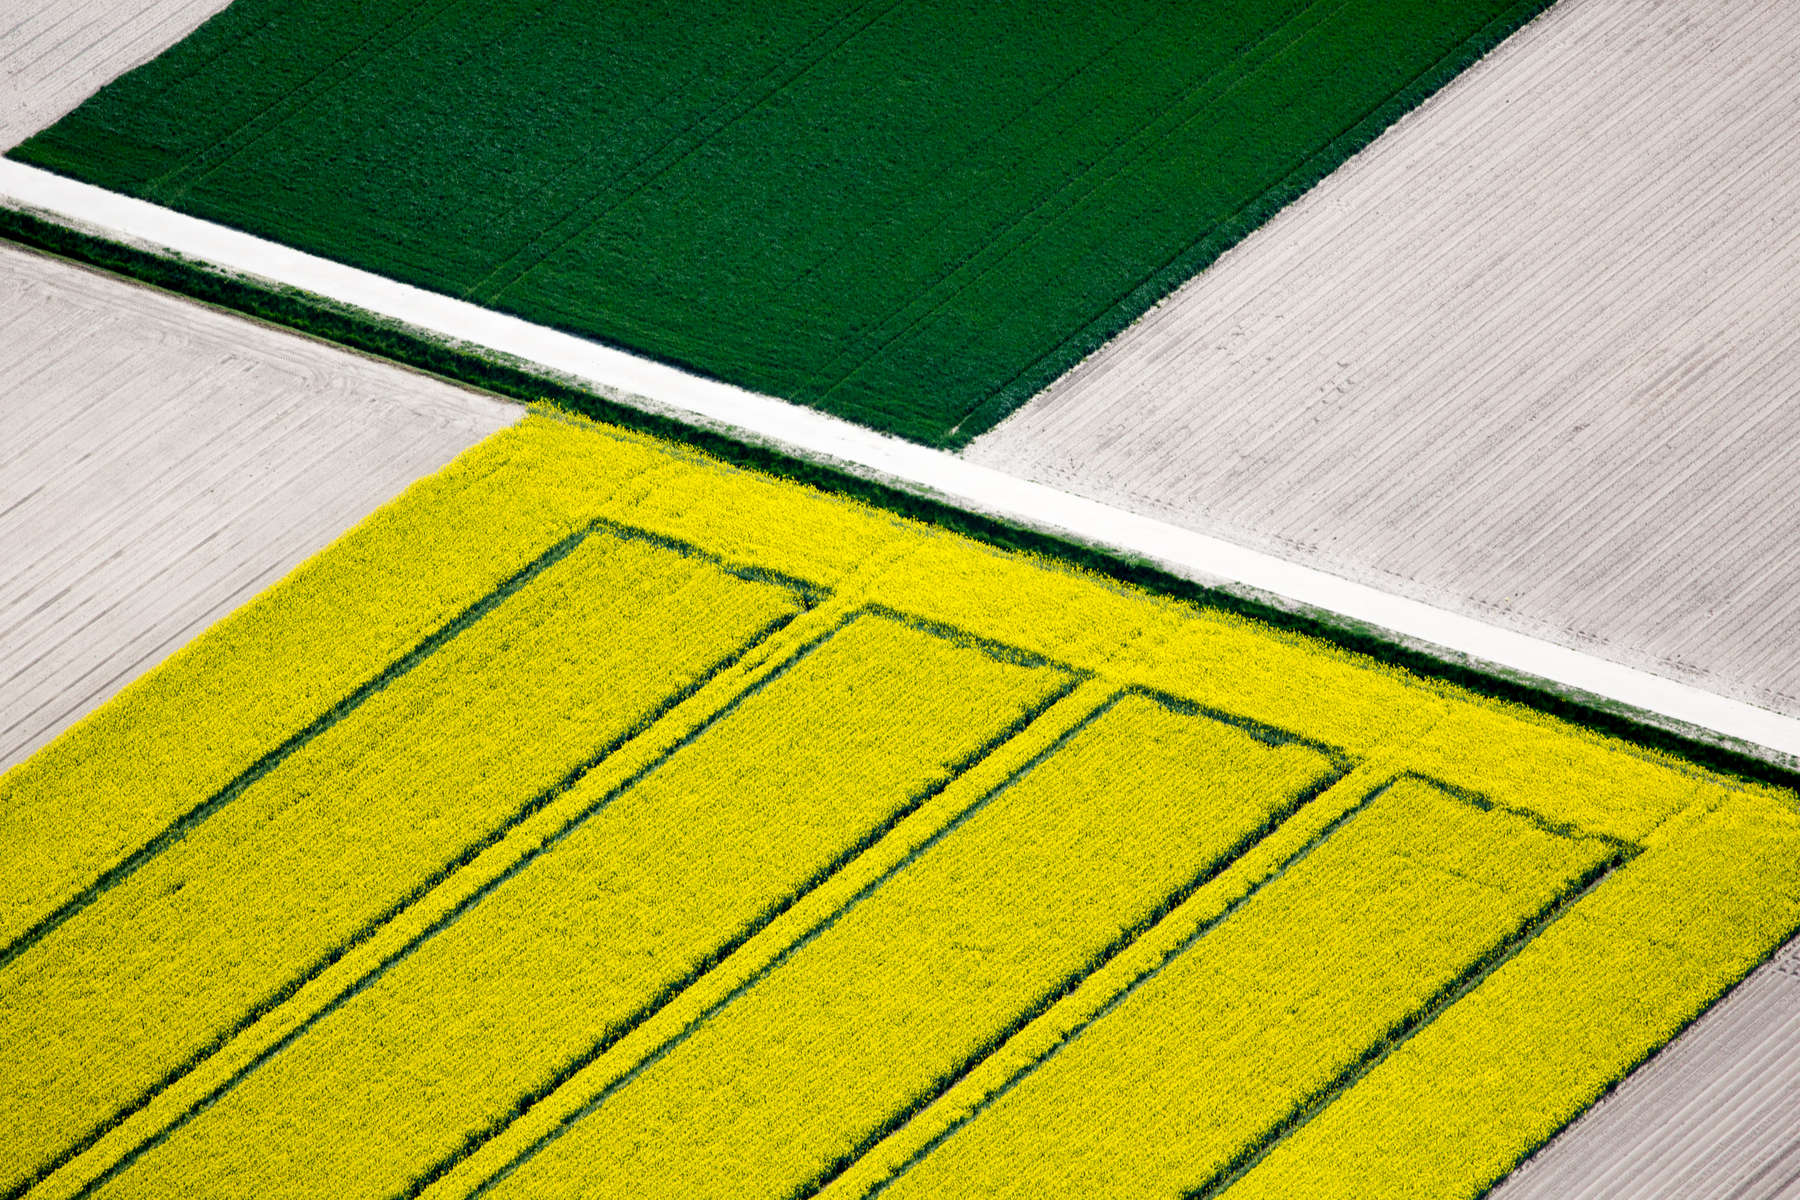 Tulip Field Divide, Netherlands 2015 (150510-0087)